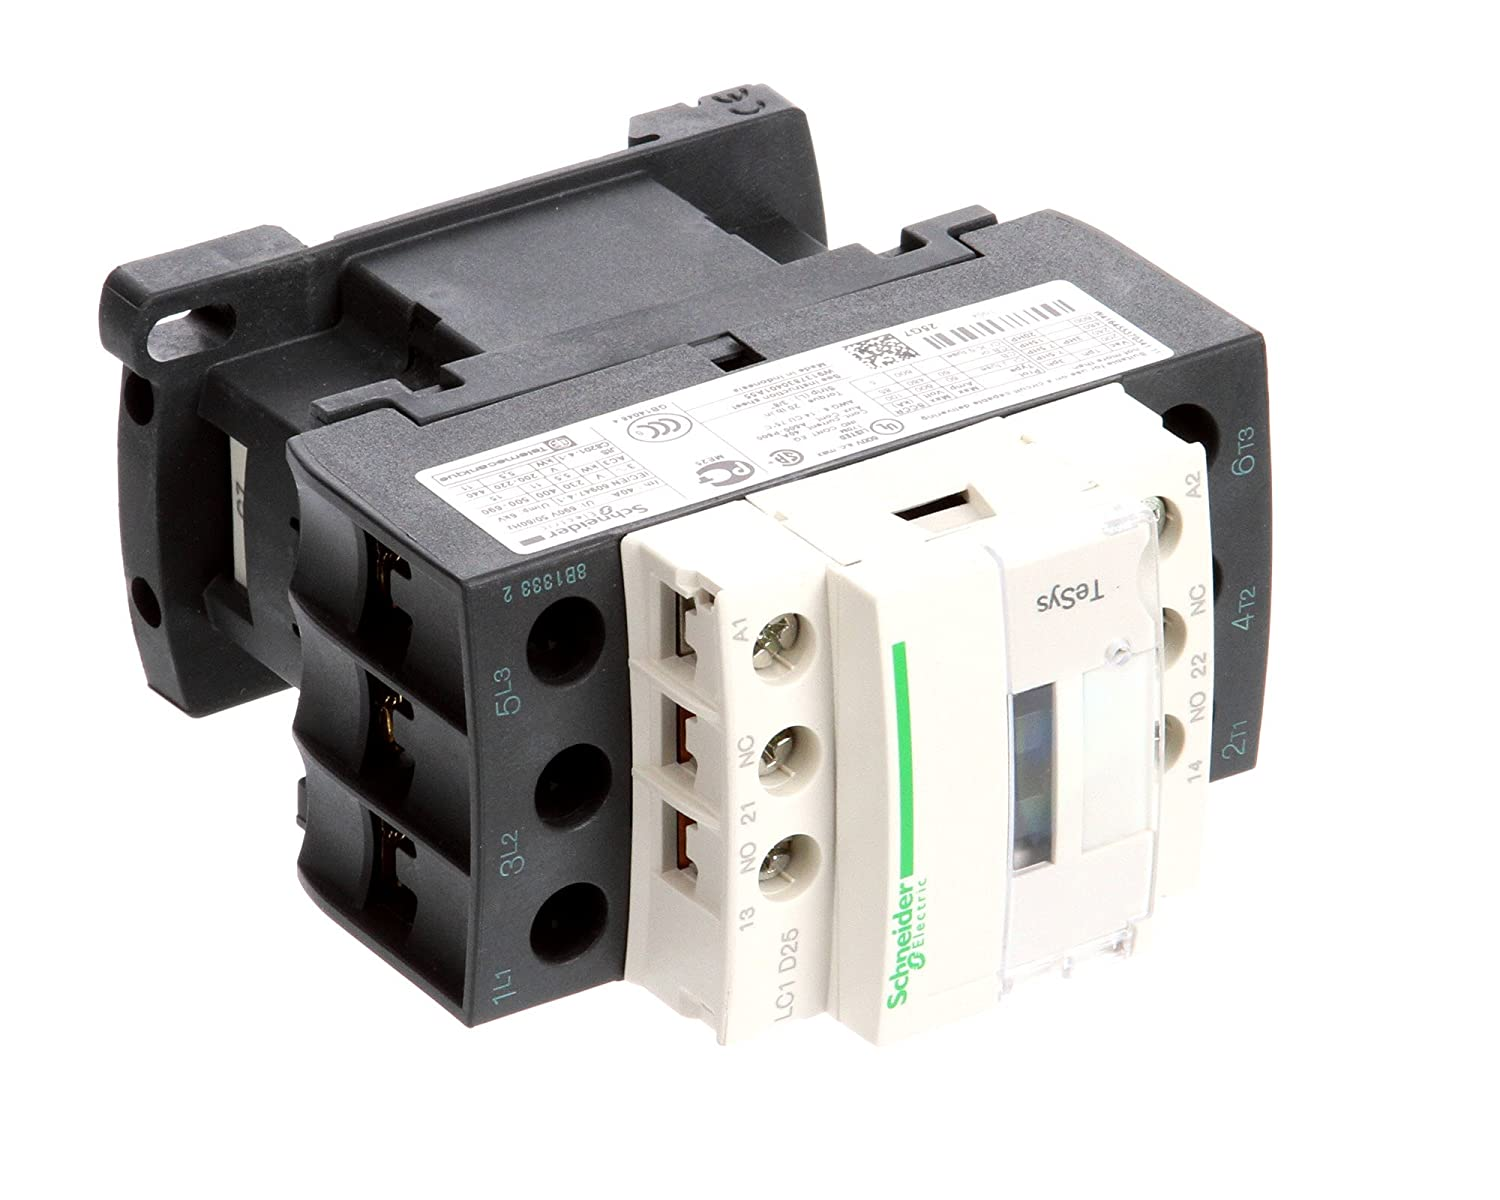 Max 58% OFF Max 42% OFF Champion Moyer Diebel 0512432 Three-Pole Compatibl for Contactor